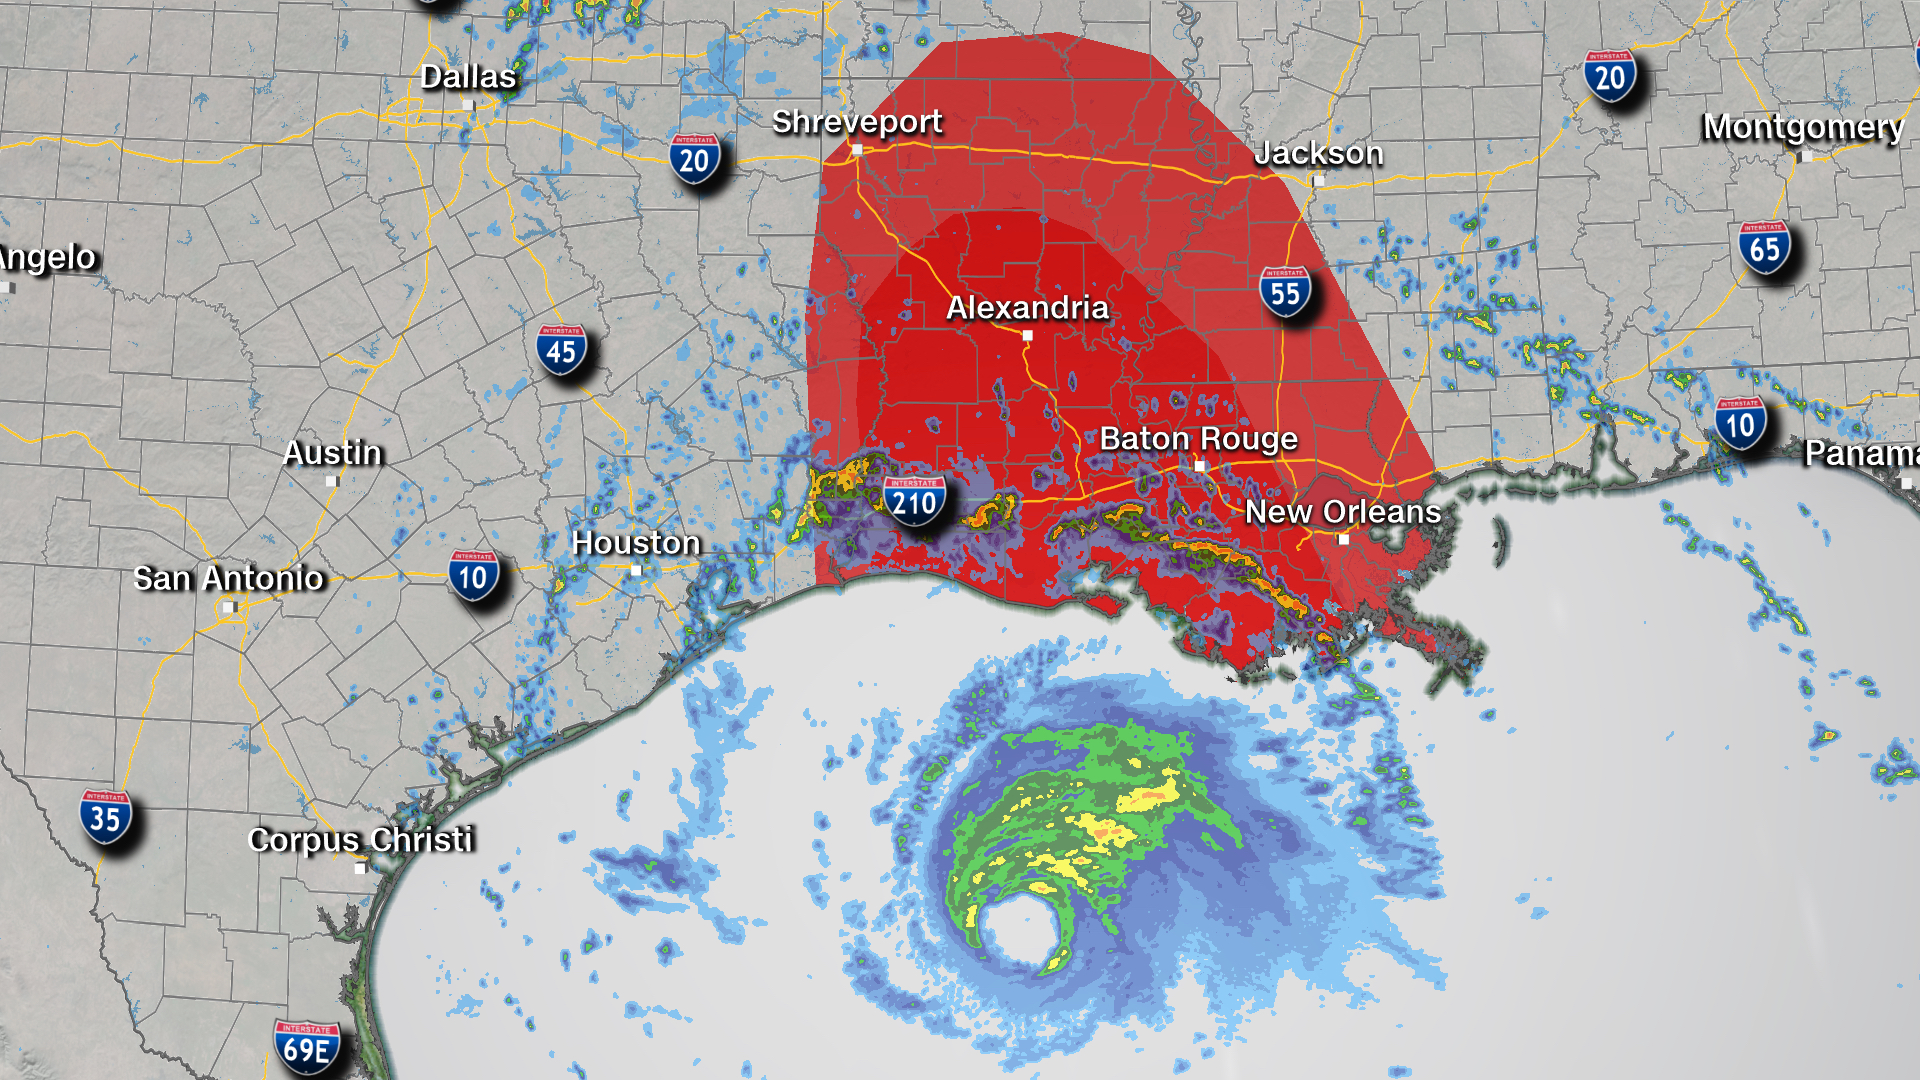 Tornadoes are possible within the area shaded in red.